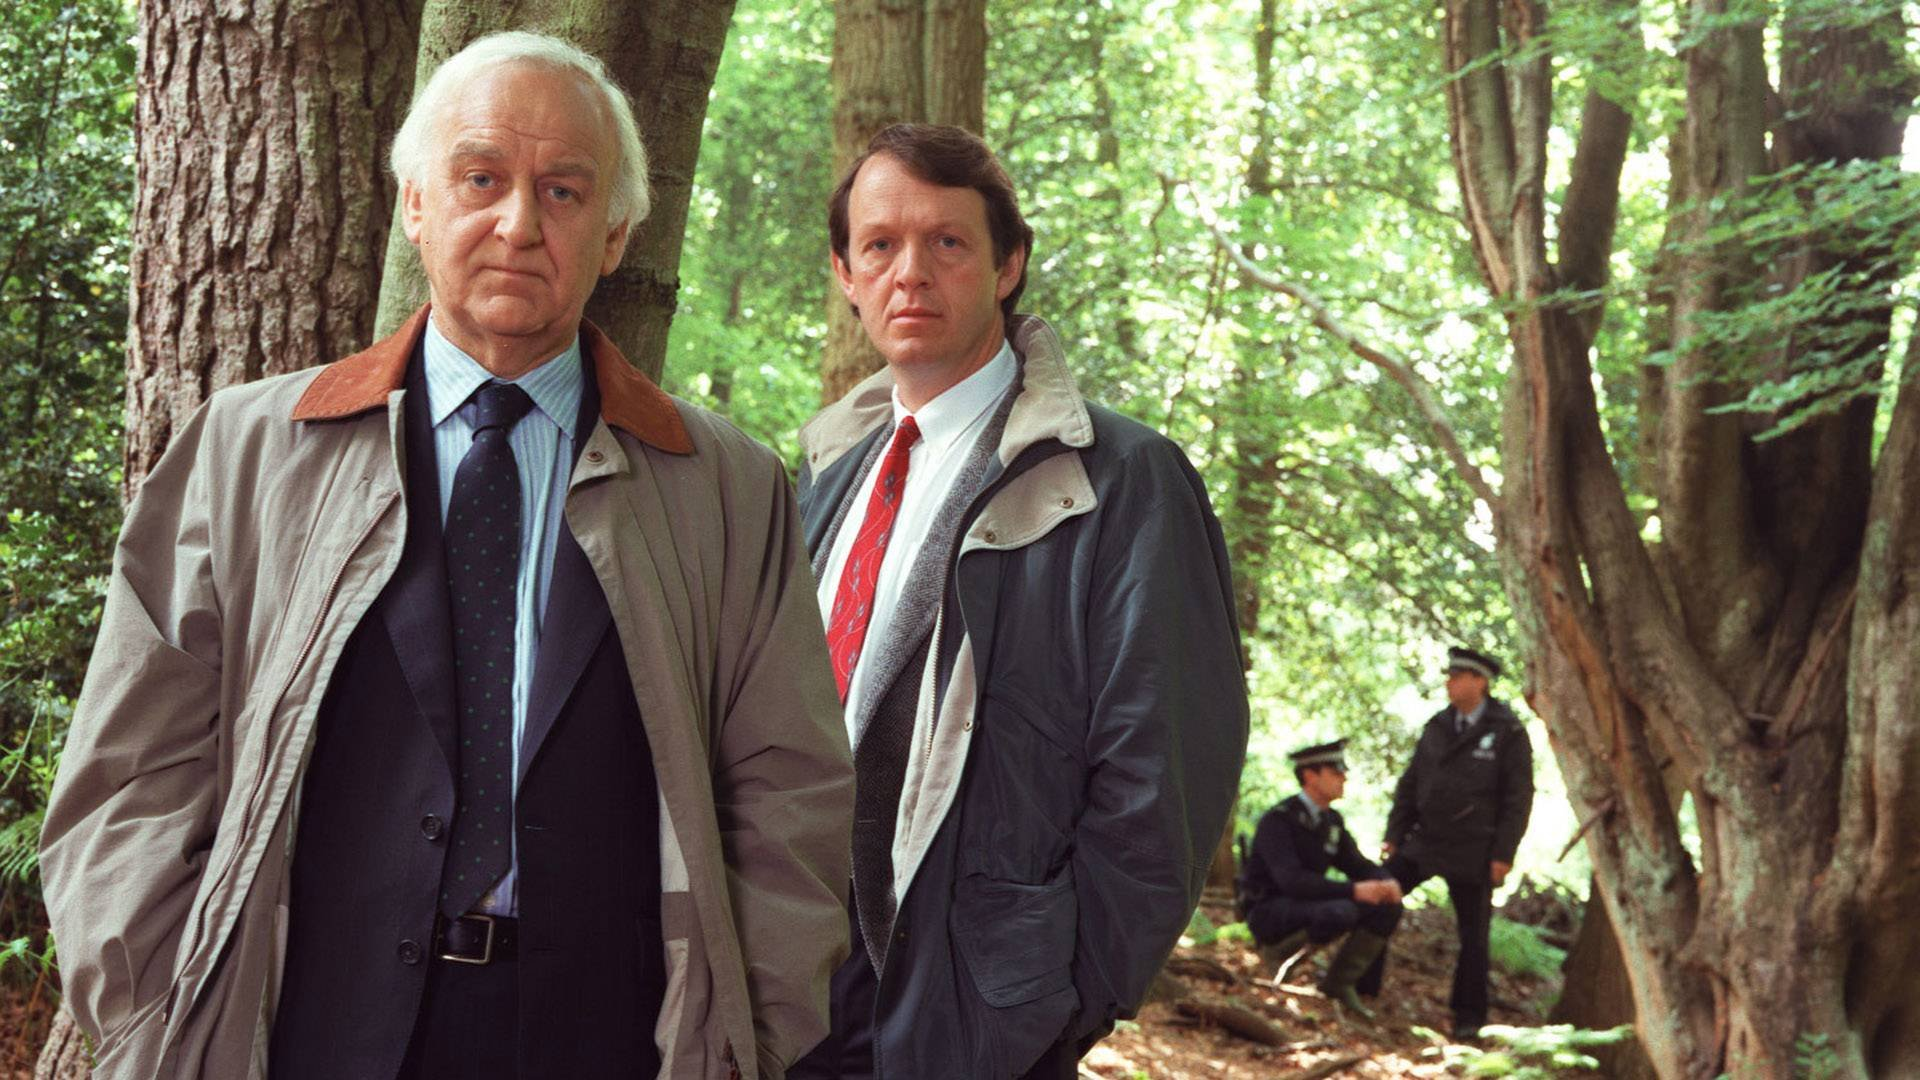 Inspector Morse: The Way Through the Woods on BritBox UK